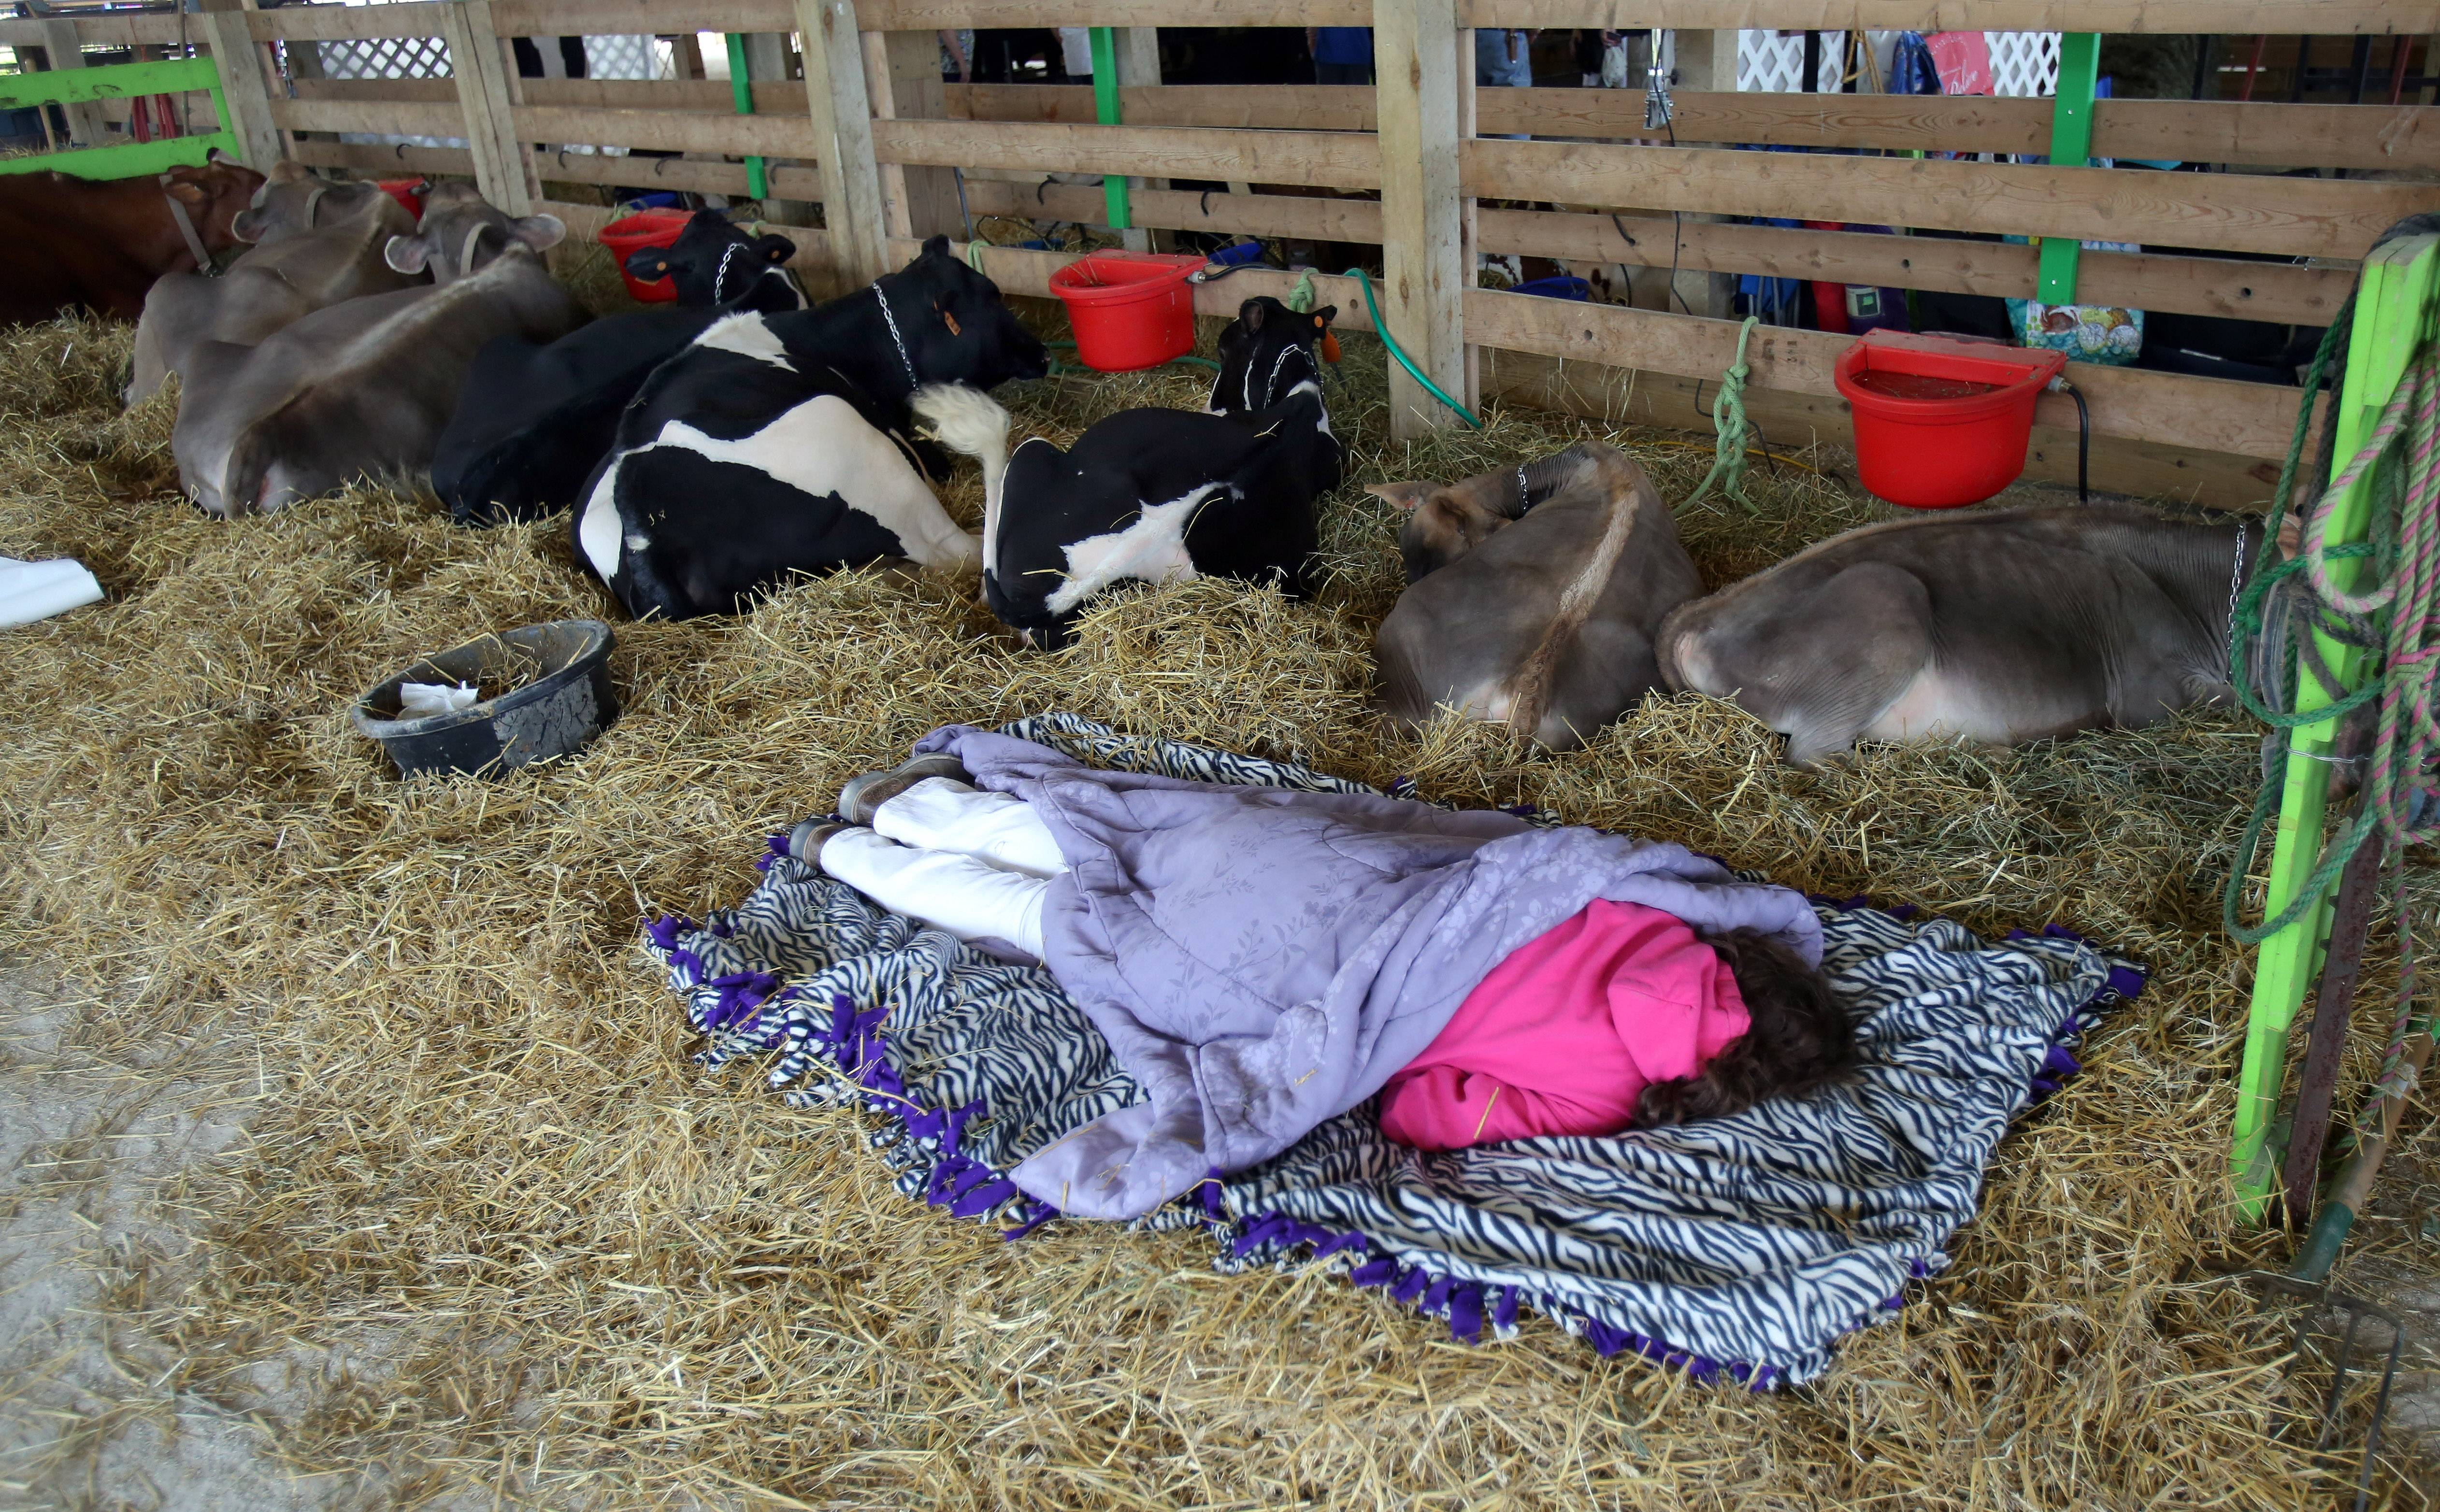 Marlena Streffenhagen, of Rockford, sleeps with her cows Friday at the Lake County Fair in Grayslake.